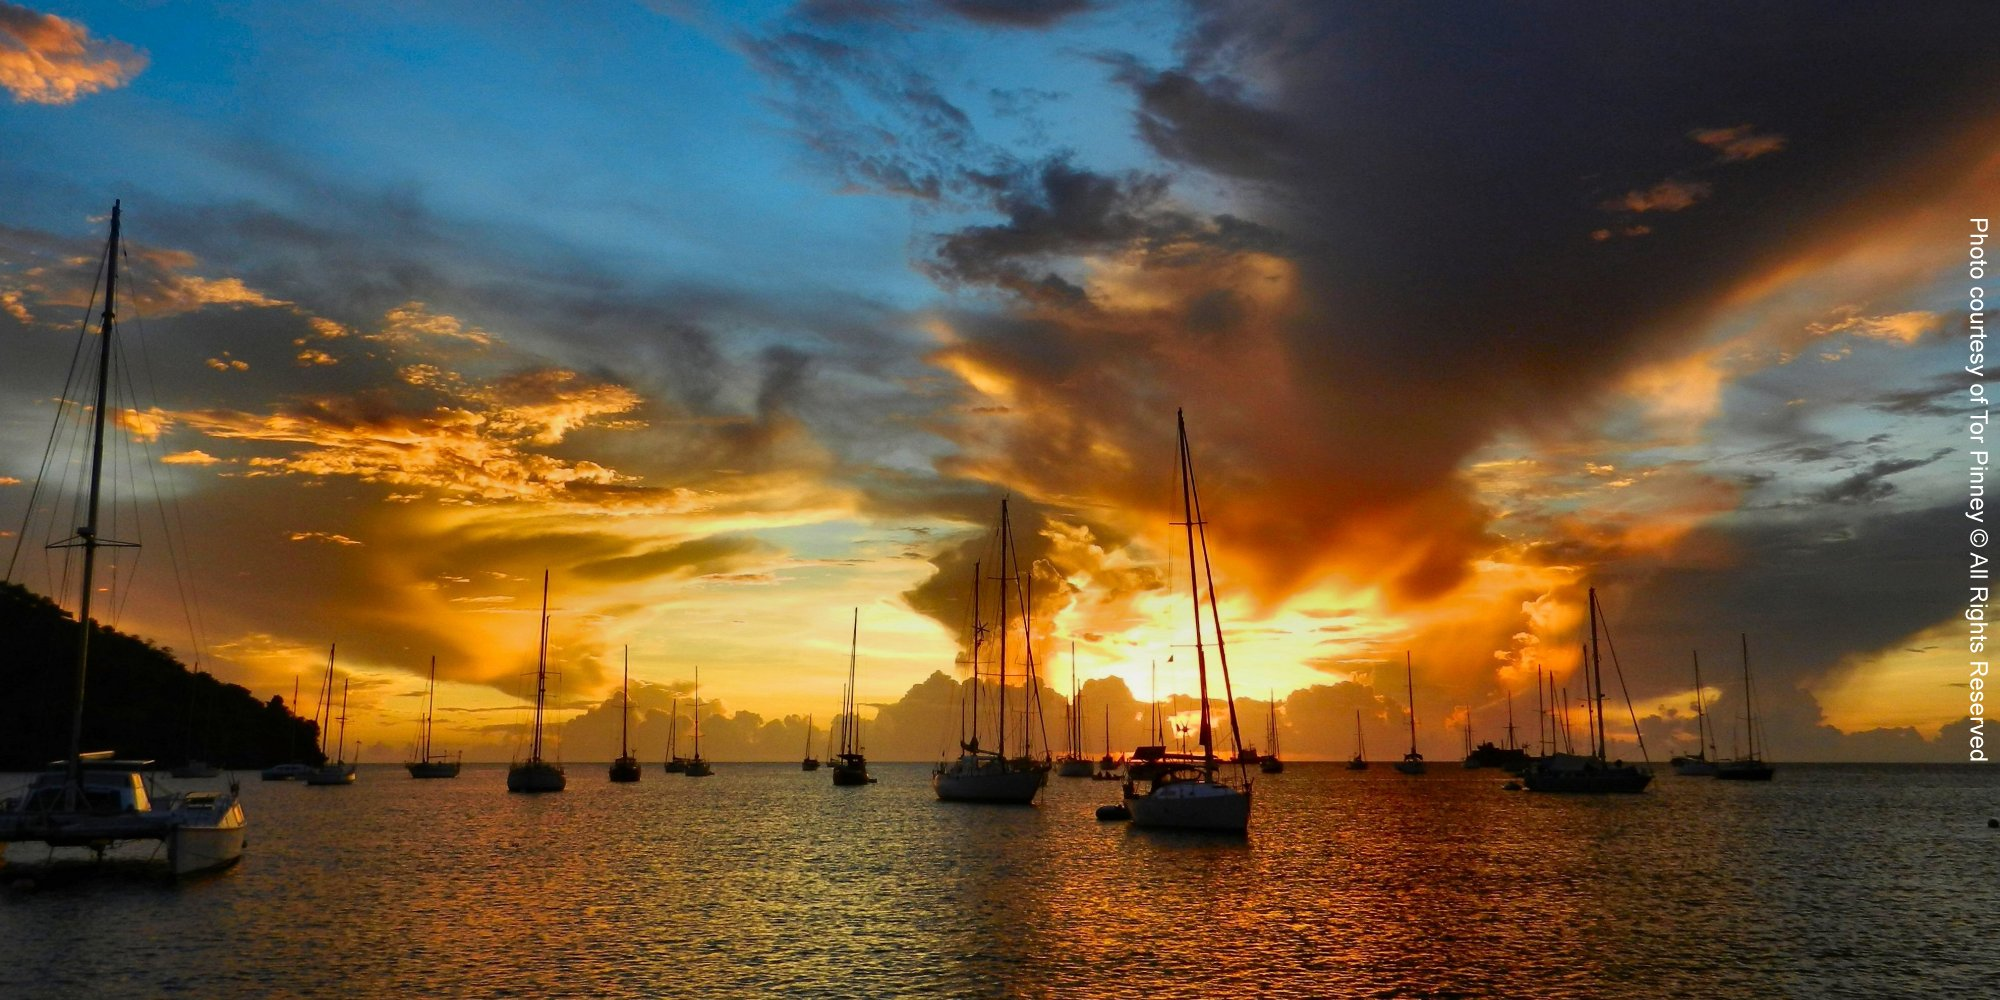 carriacou-sunset_p424-site